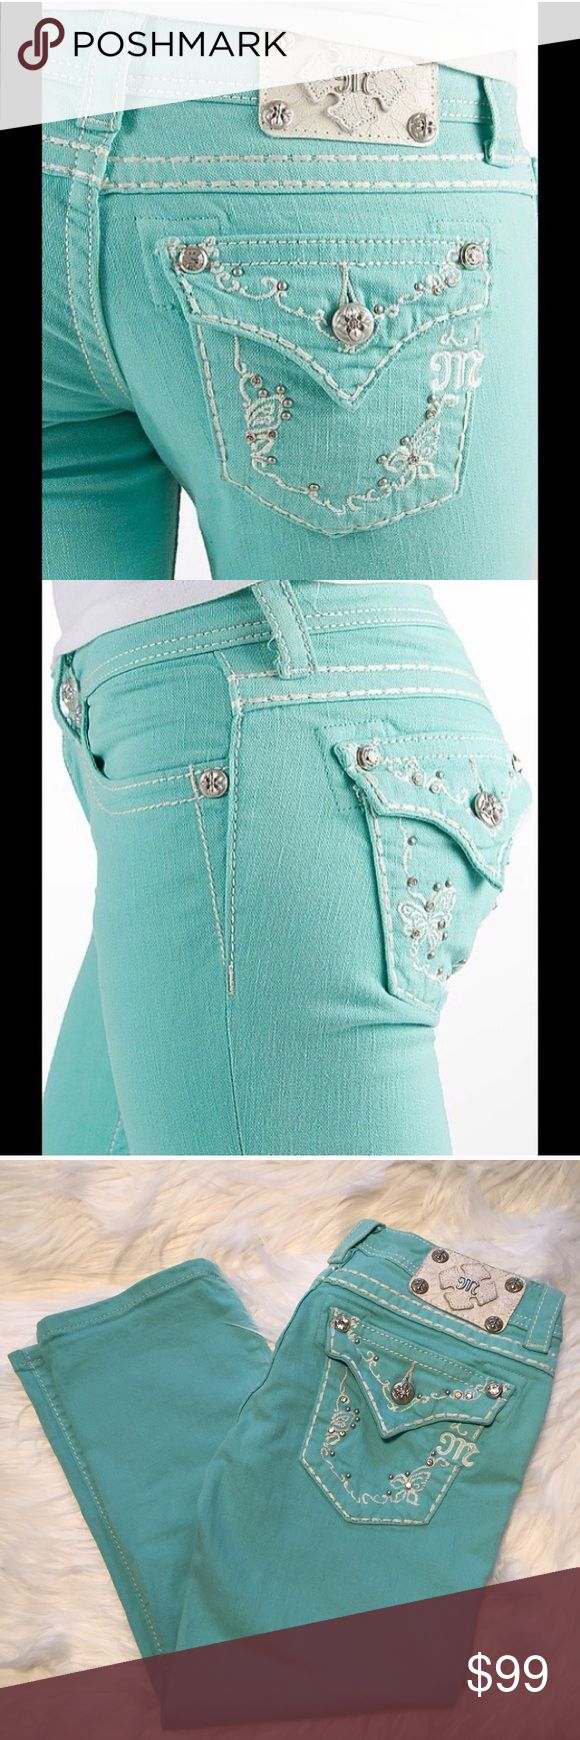 "1 hour sale ⏰ Miss Me Mint Capri Stretch Jeans 27 Very clean and in excellent preloved condition. This is my favorite color in the whole wide world and I wish these were my size. Very rare and priced accordingly. 2% elastane. Size 27. 28"" unstretched waist. 7"" rise. 22"" inseam. Miss Me Jeans Ankle & Cropped"